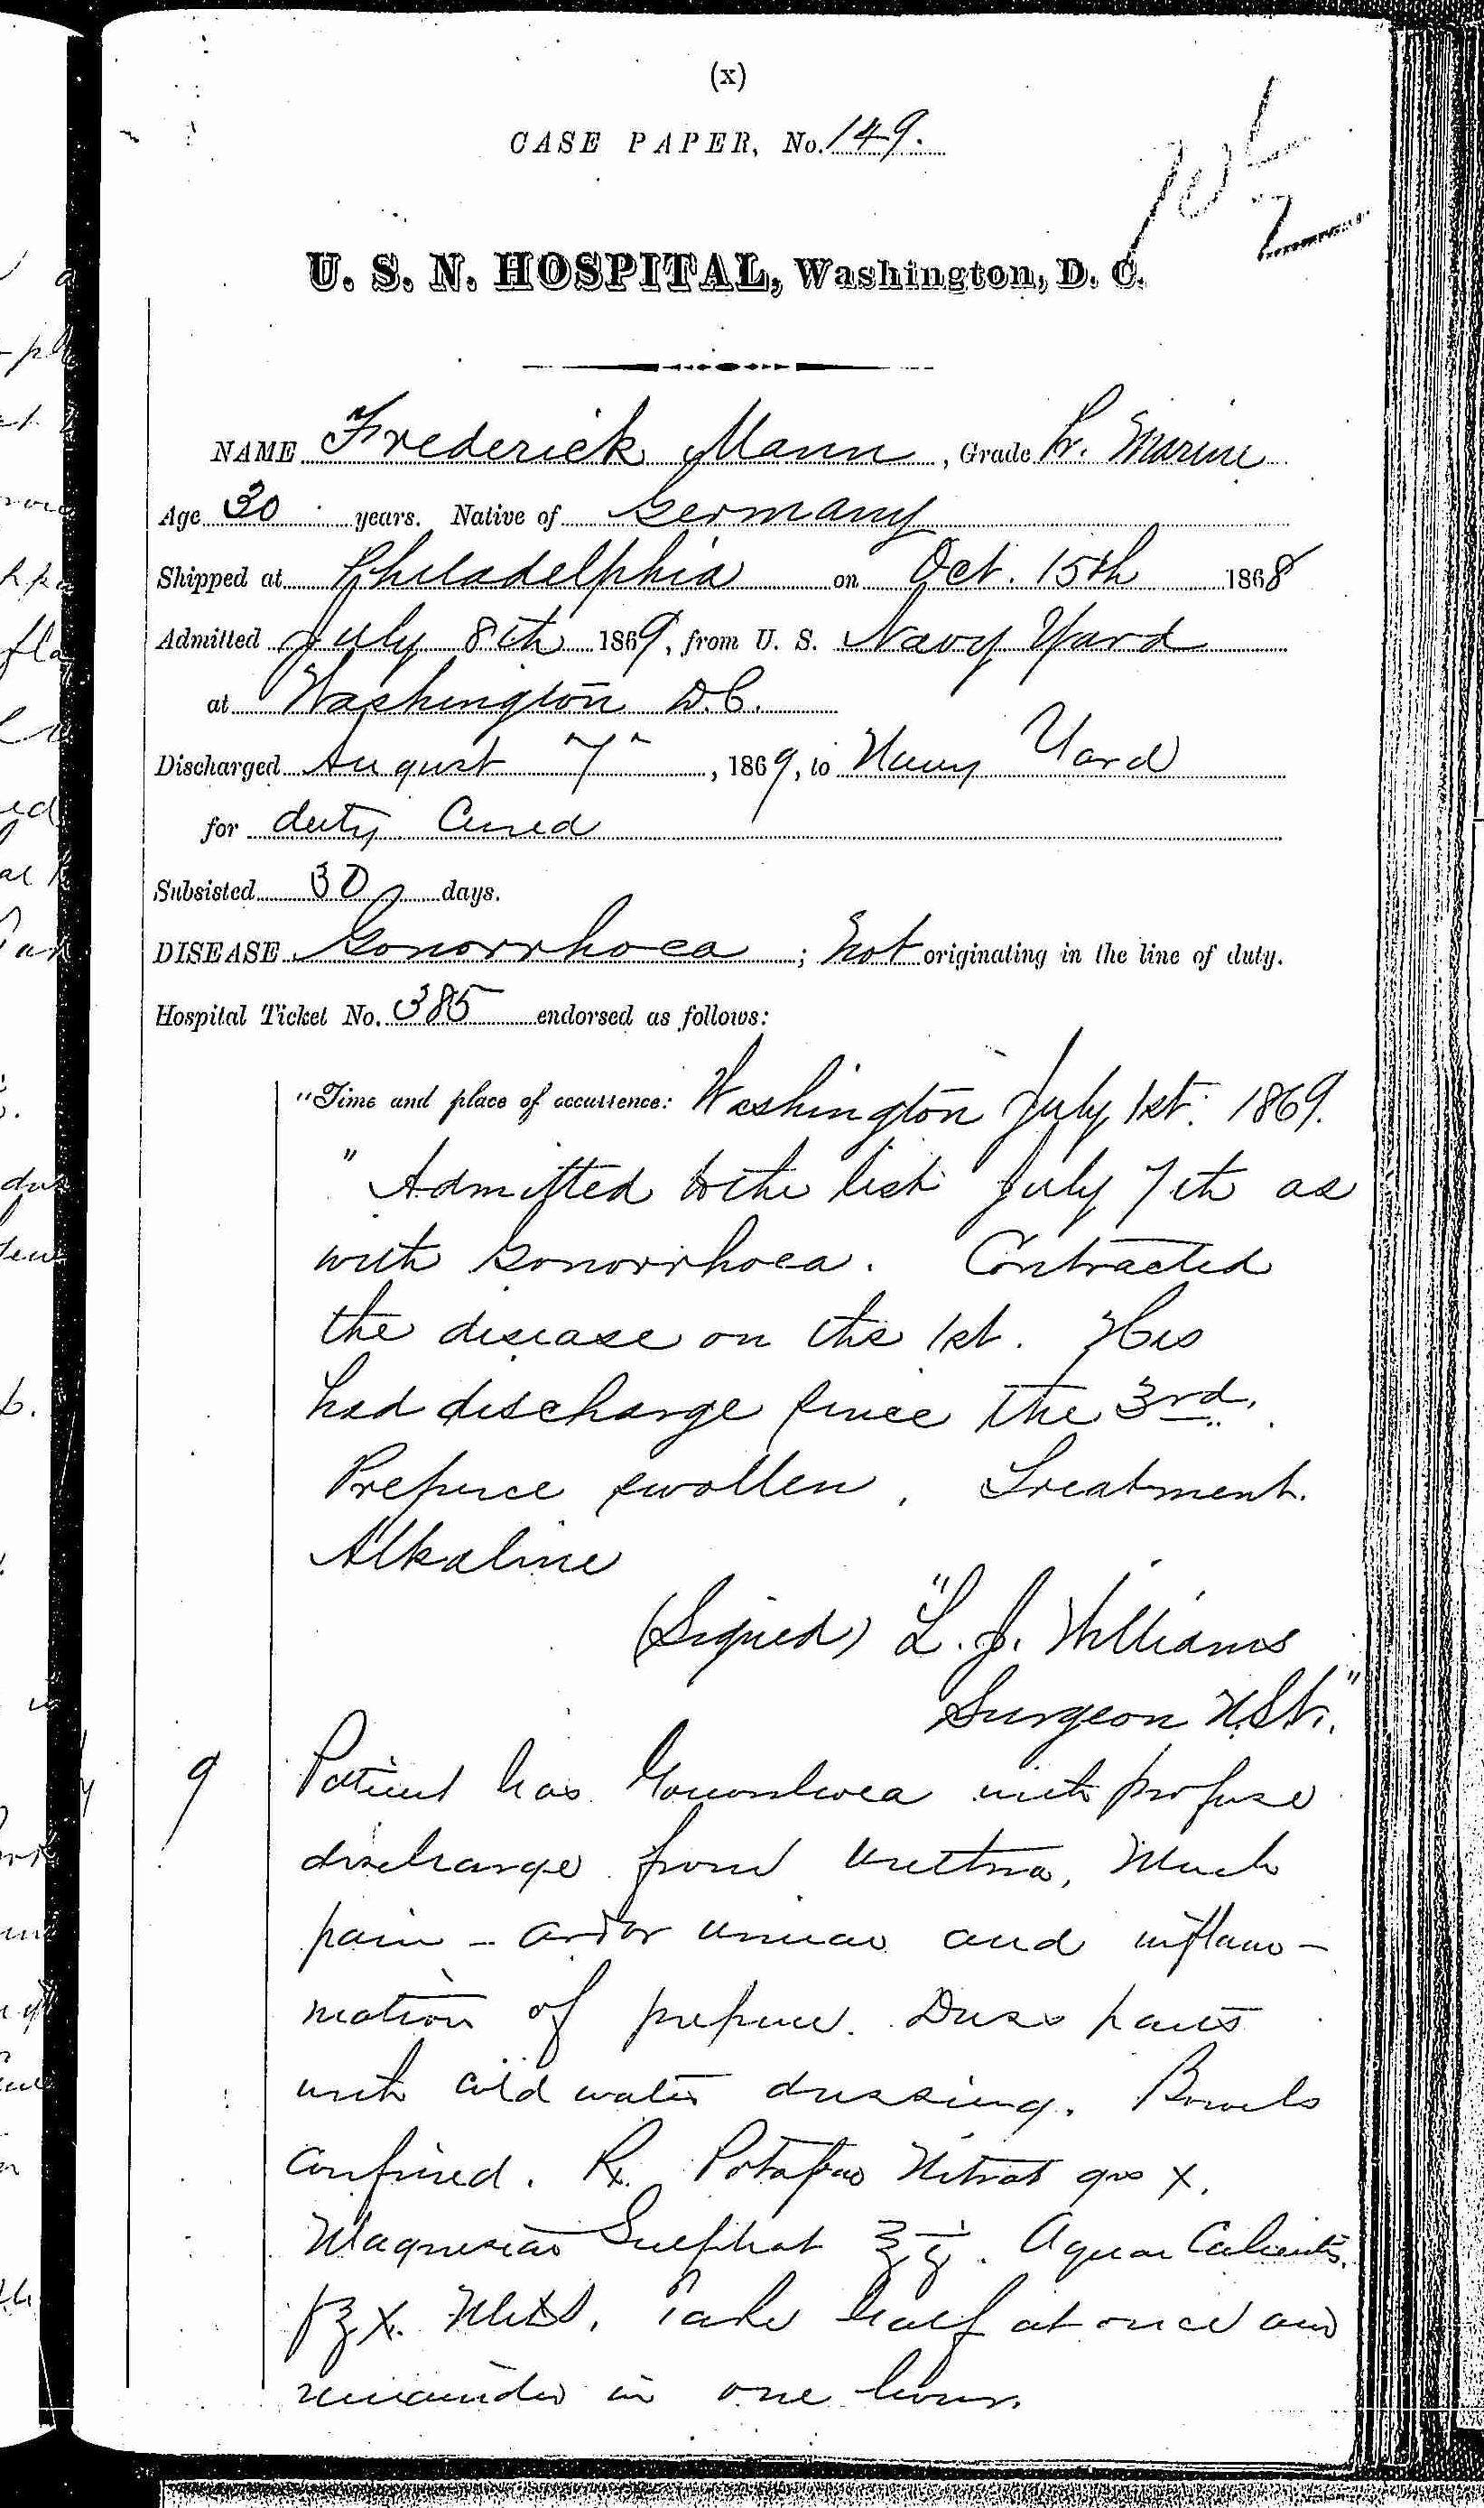 Entry for Frederick Mann (second admission page 1 of 3) in the log Hospital Tickets and Case Papers - Naval Hospital - Washington, D.C. - 1868-69